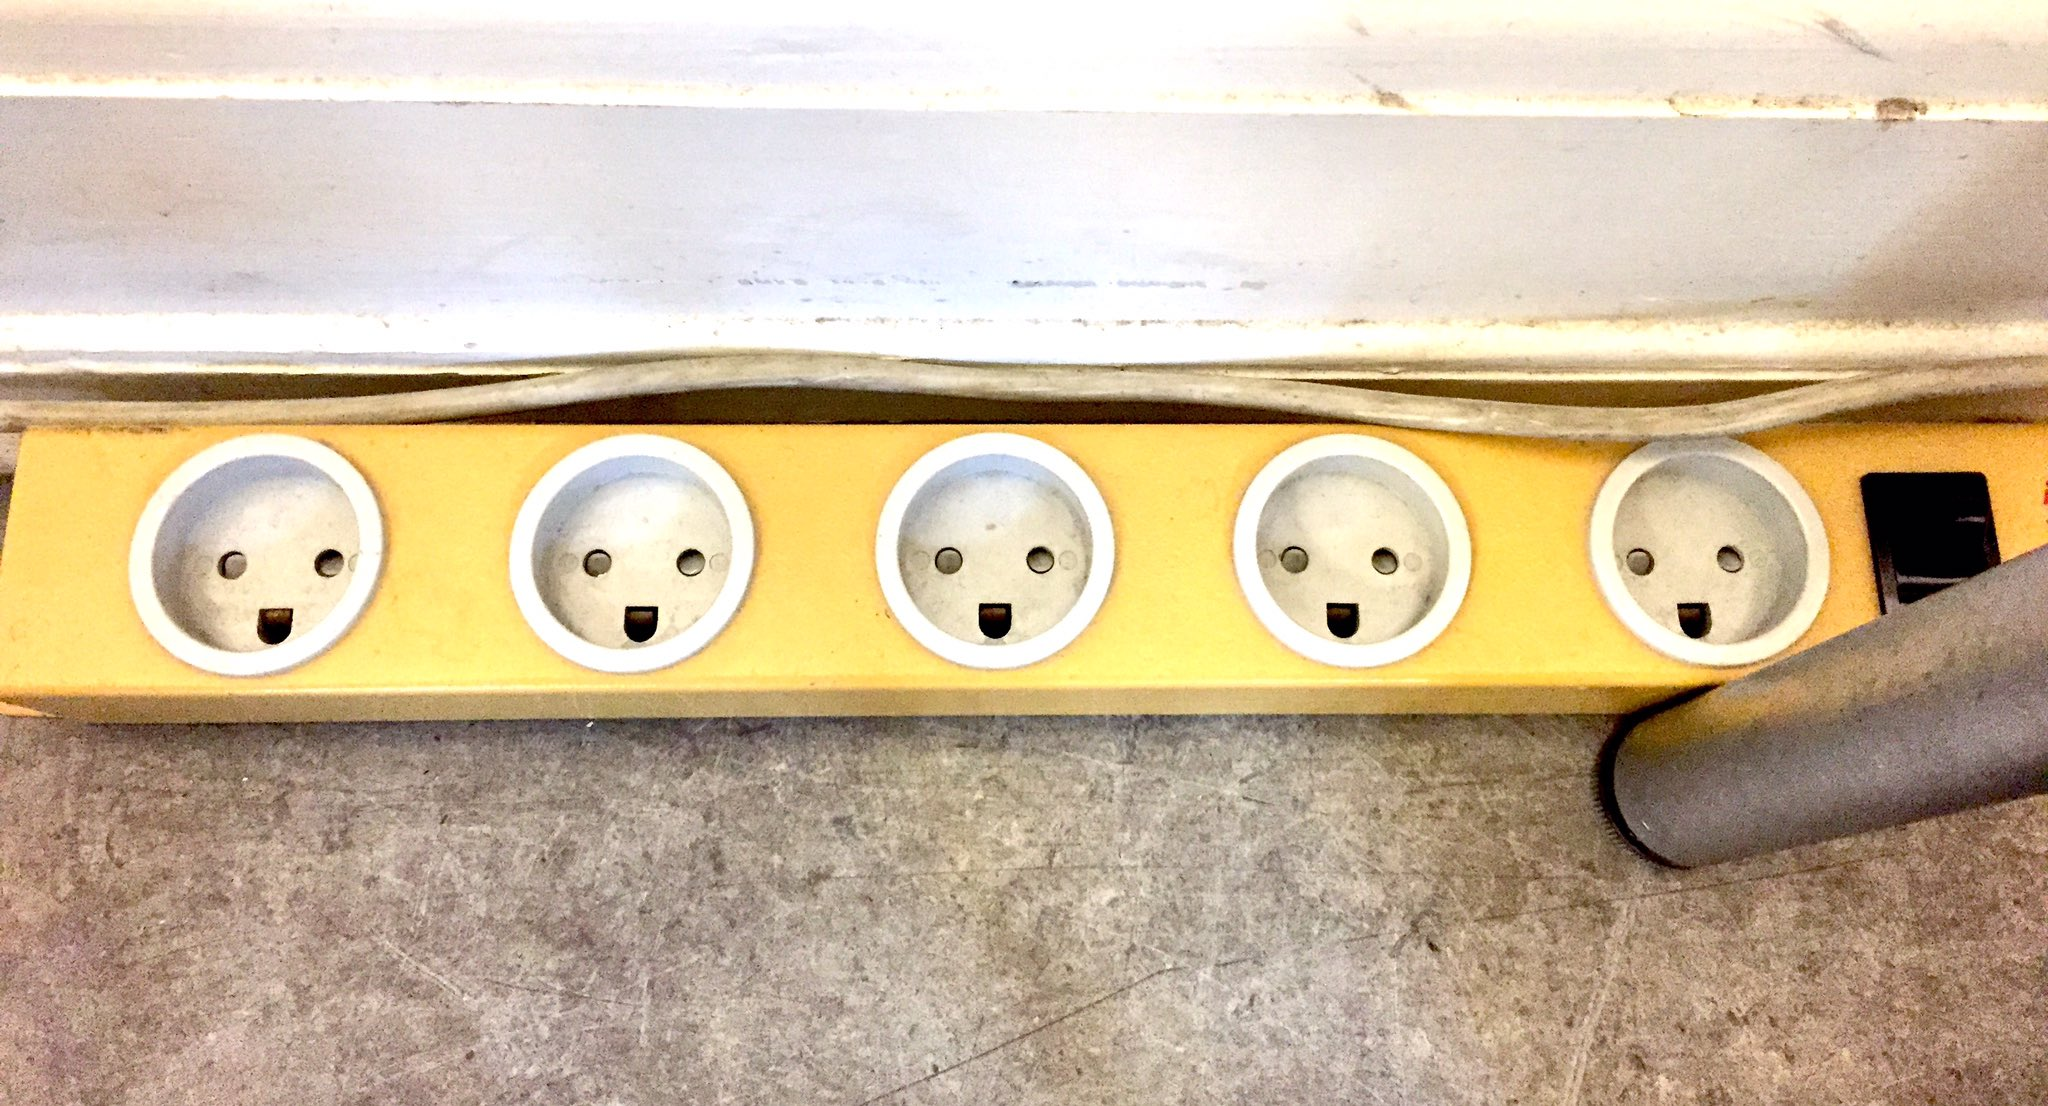 Denmark has the happiest power outlets I have ever seen https://t.co/btzXVVHw7M